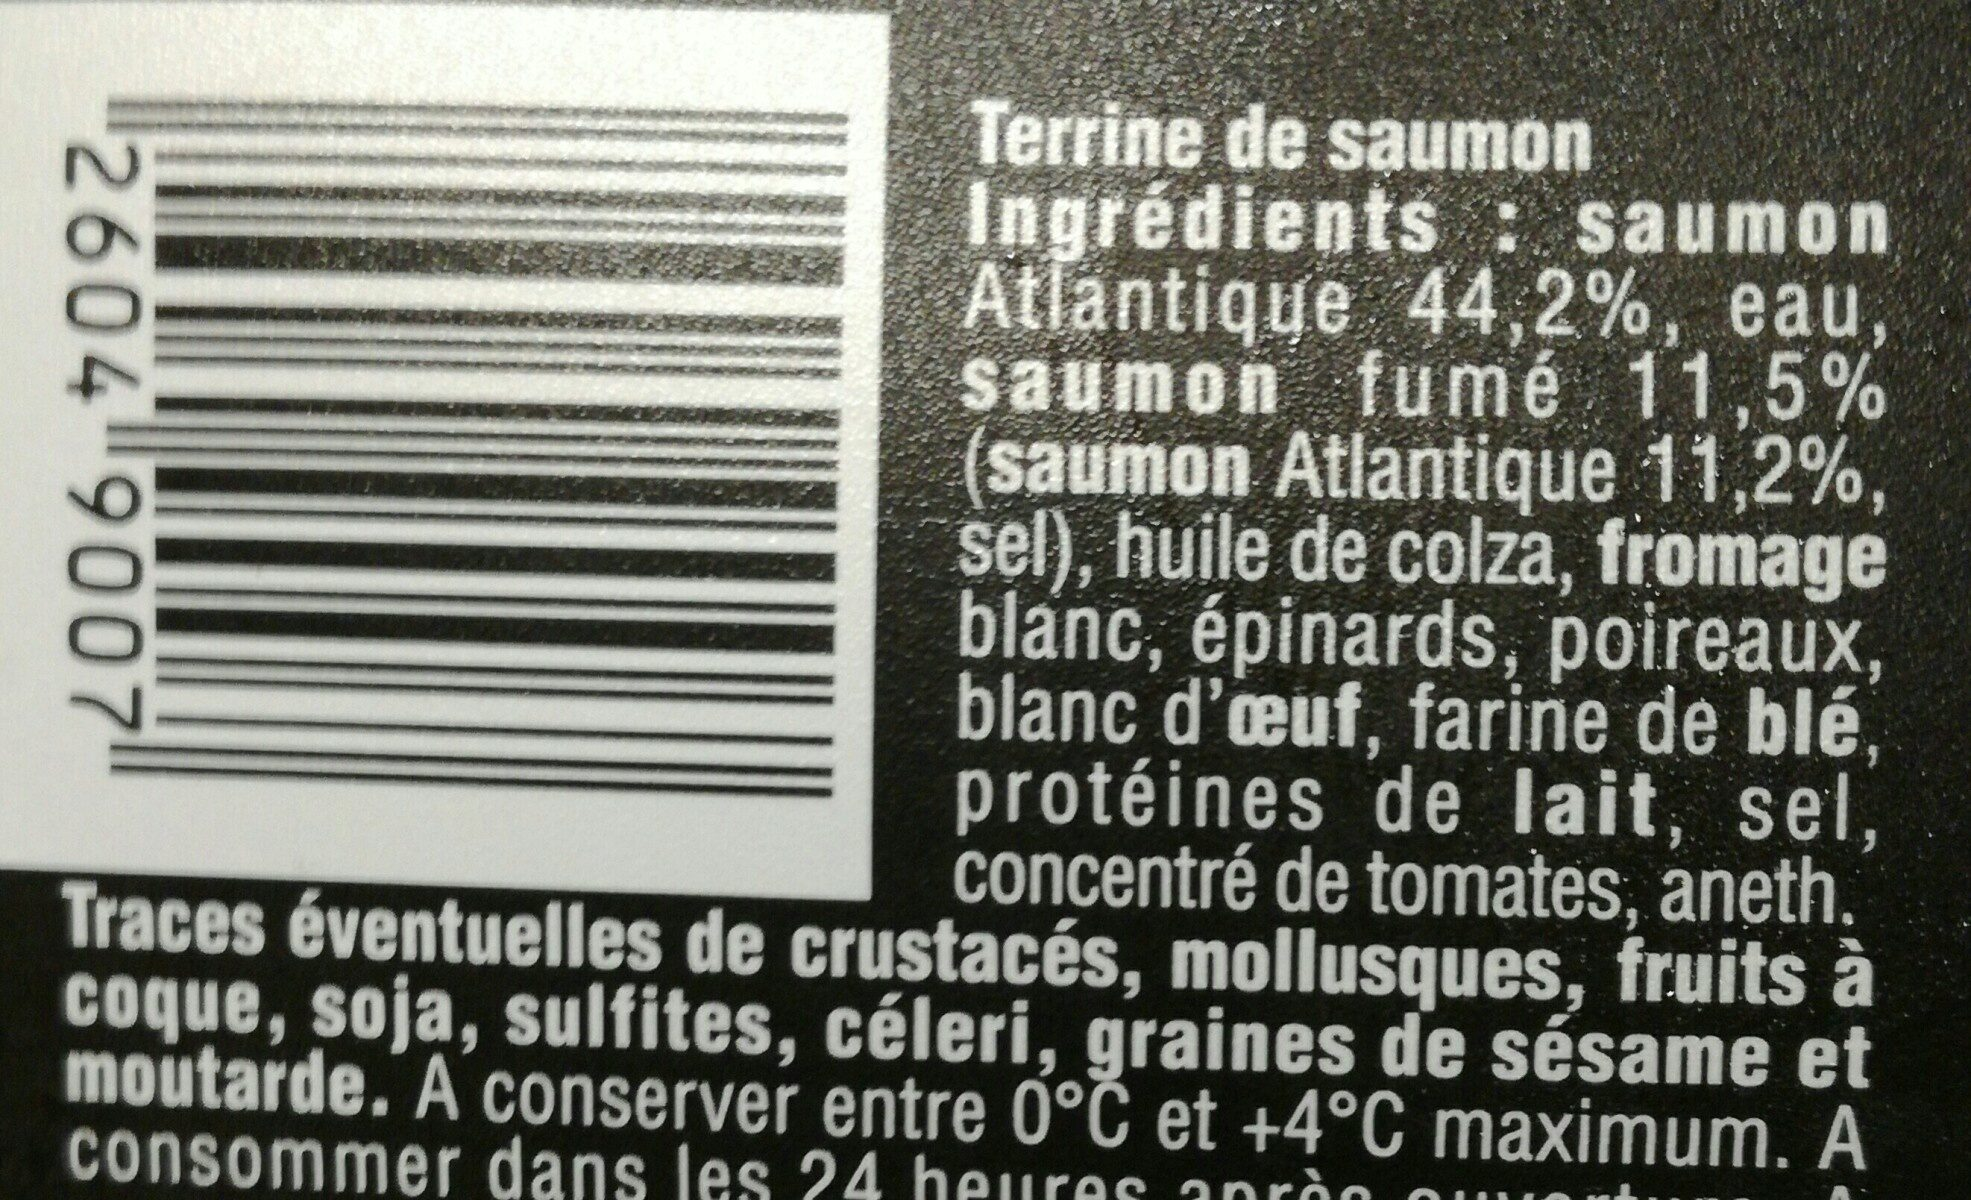 Terrine de la Mer - Saumon - Ingredients